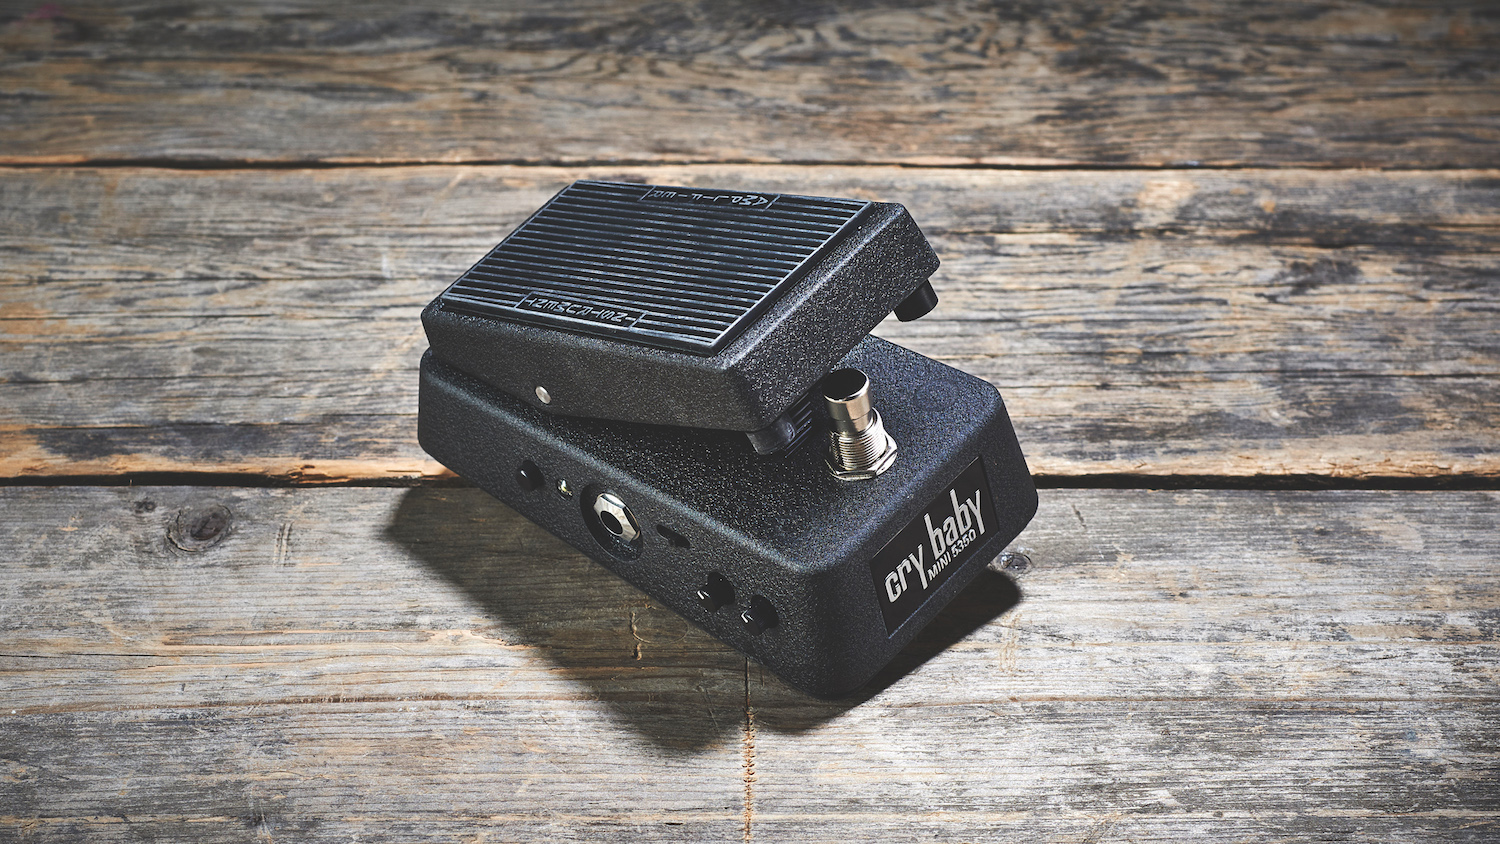 The 10 best wah pedals 2019: the top wah-wahs for your